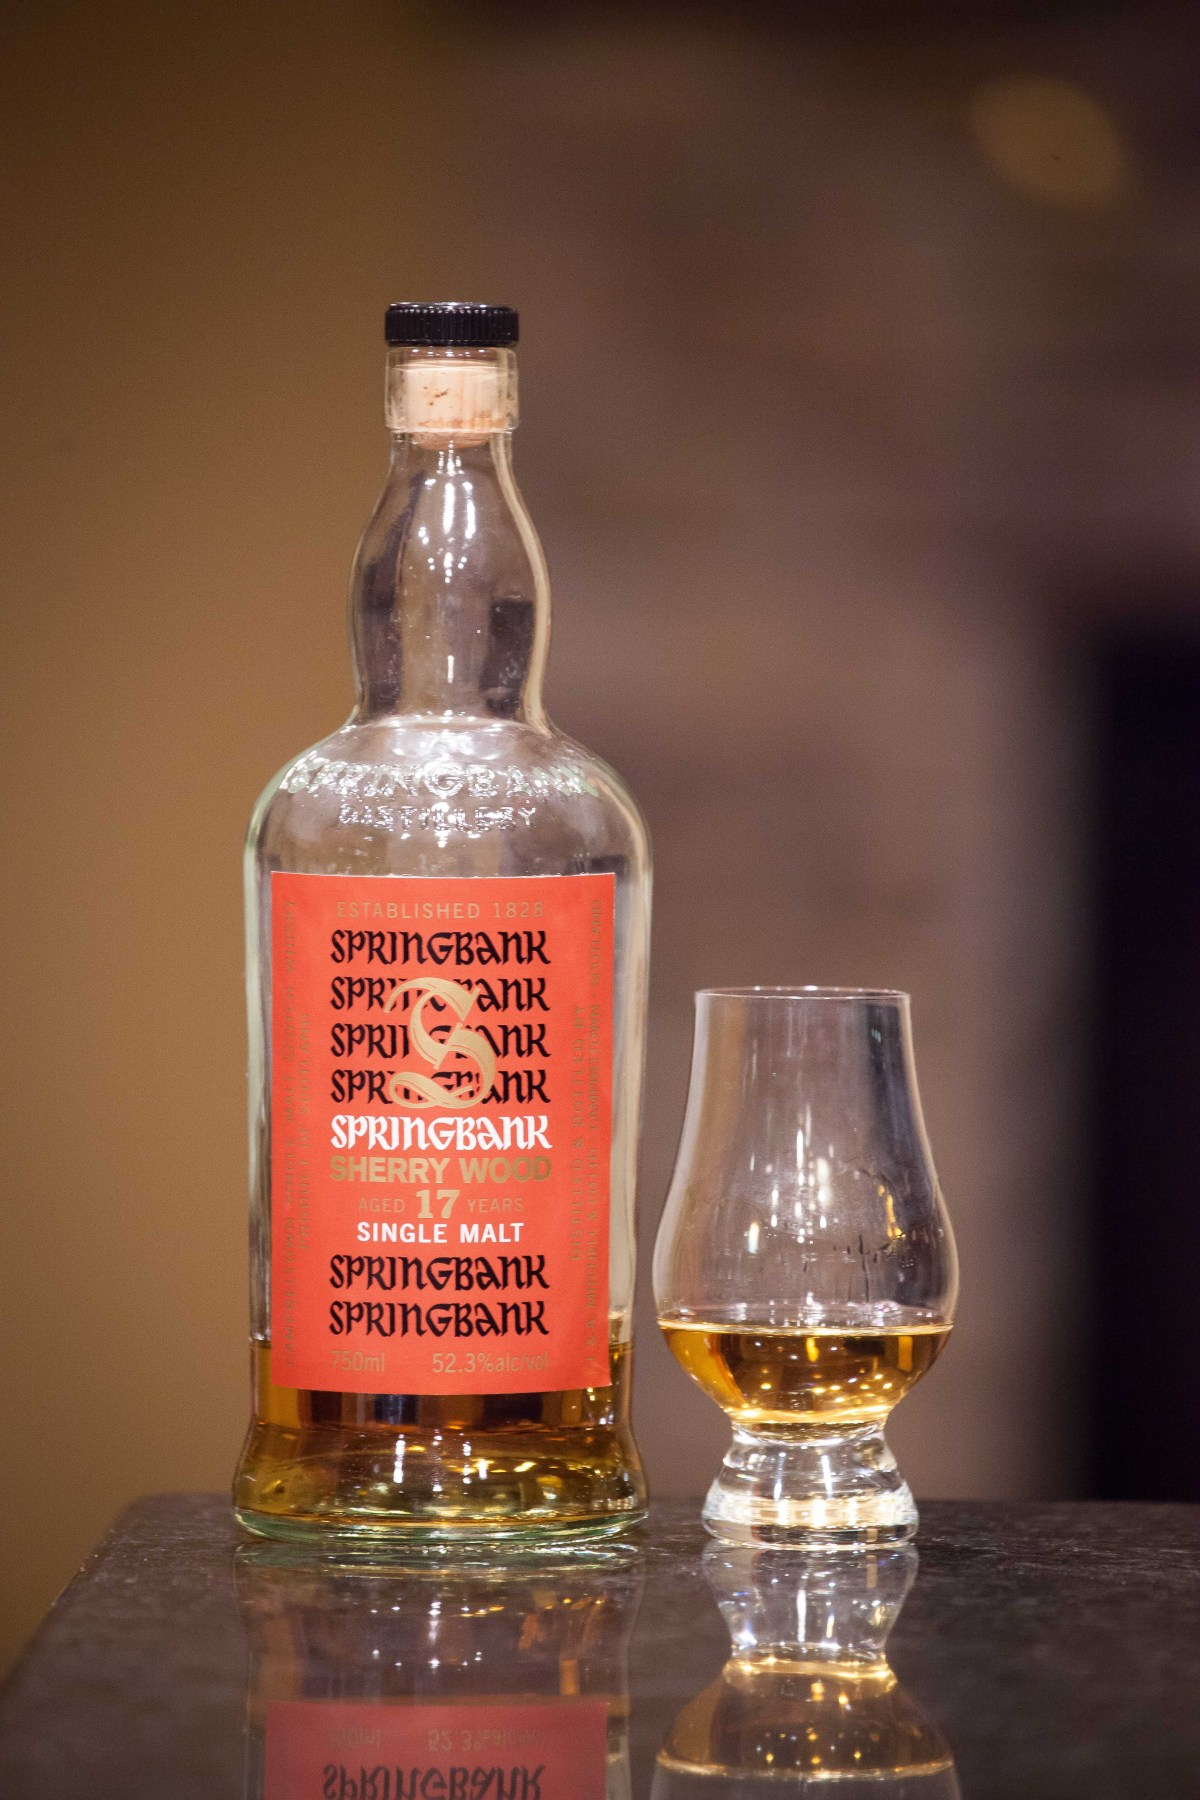 Springbank 17 Sherry Wood Review